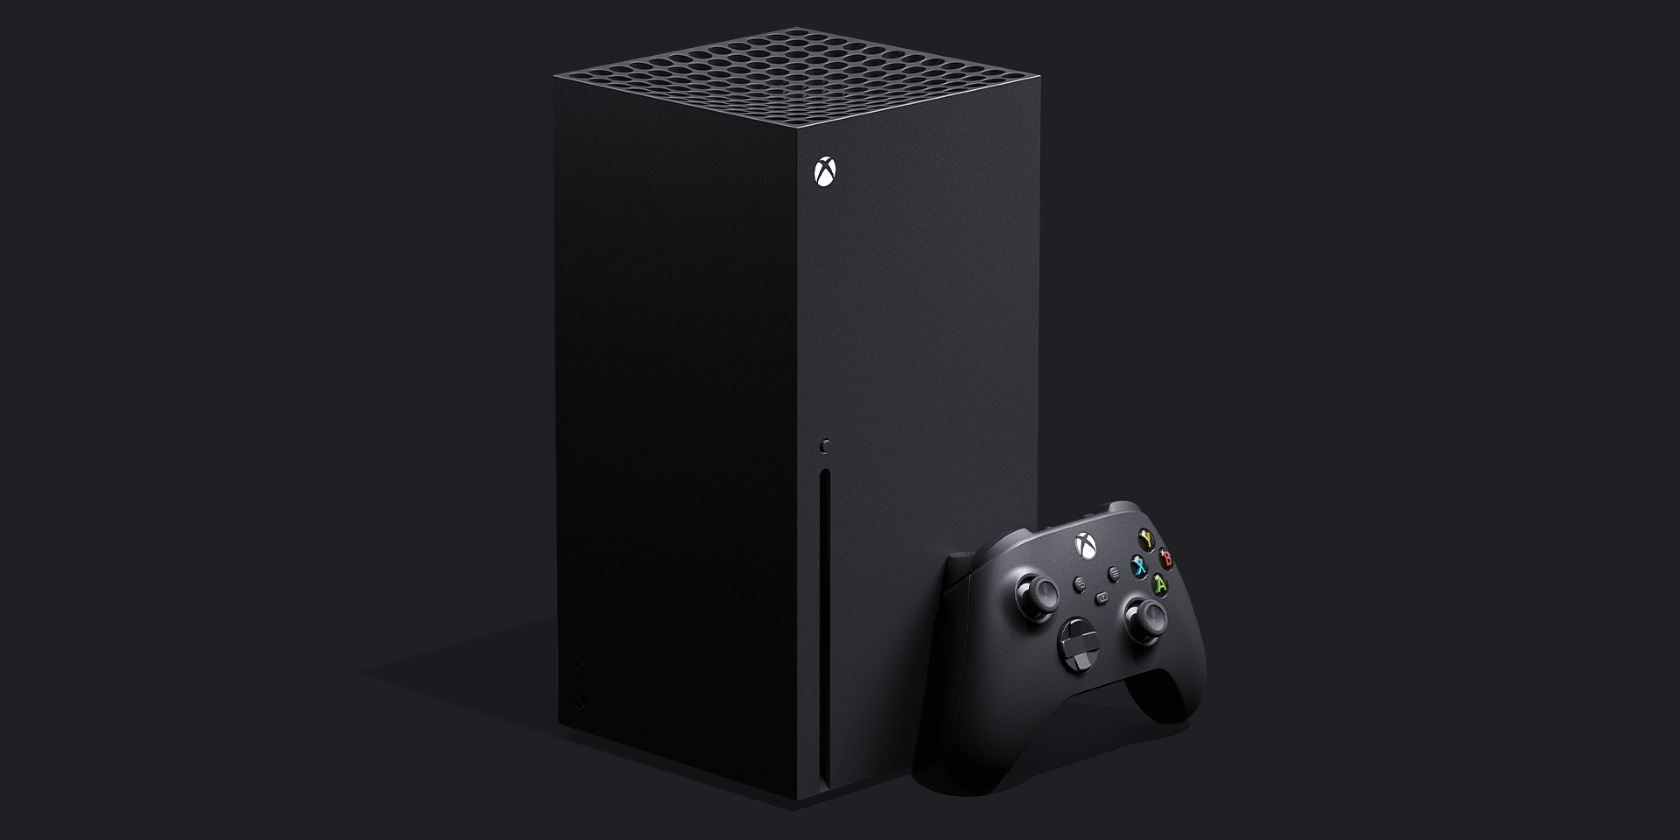 Microsoft Confirms It's Selling Xbox Consoles At a Loss